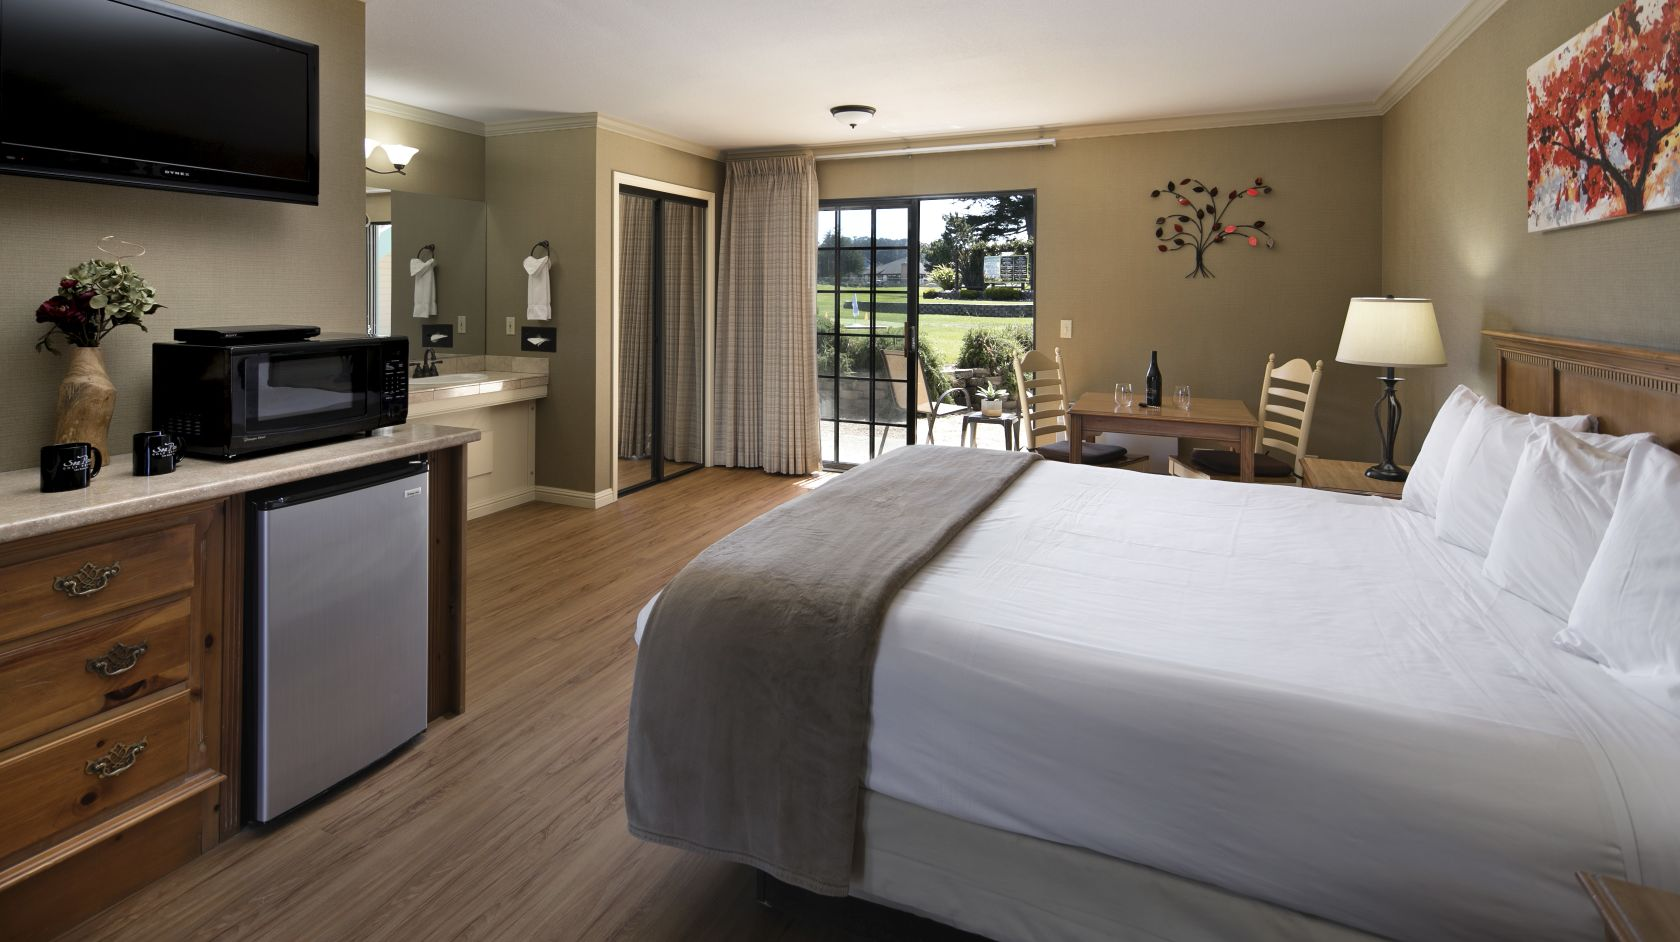 Deluxe King room with wet bar and patio at Morro Bay hotel, Sea Pines Golf Resort